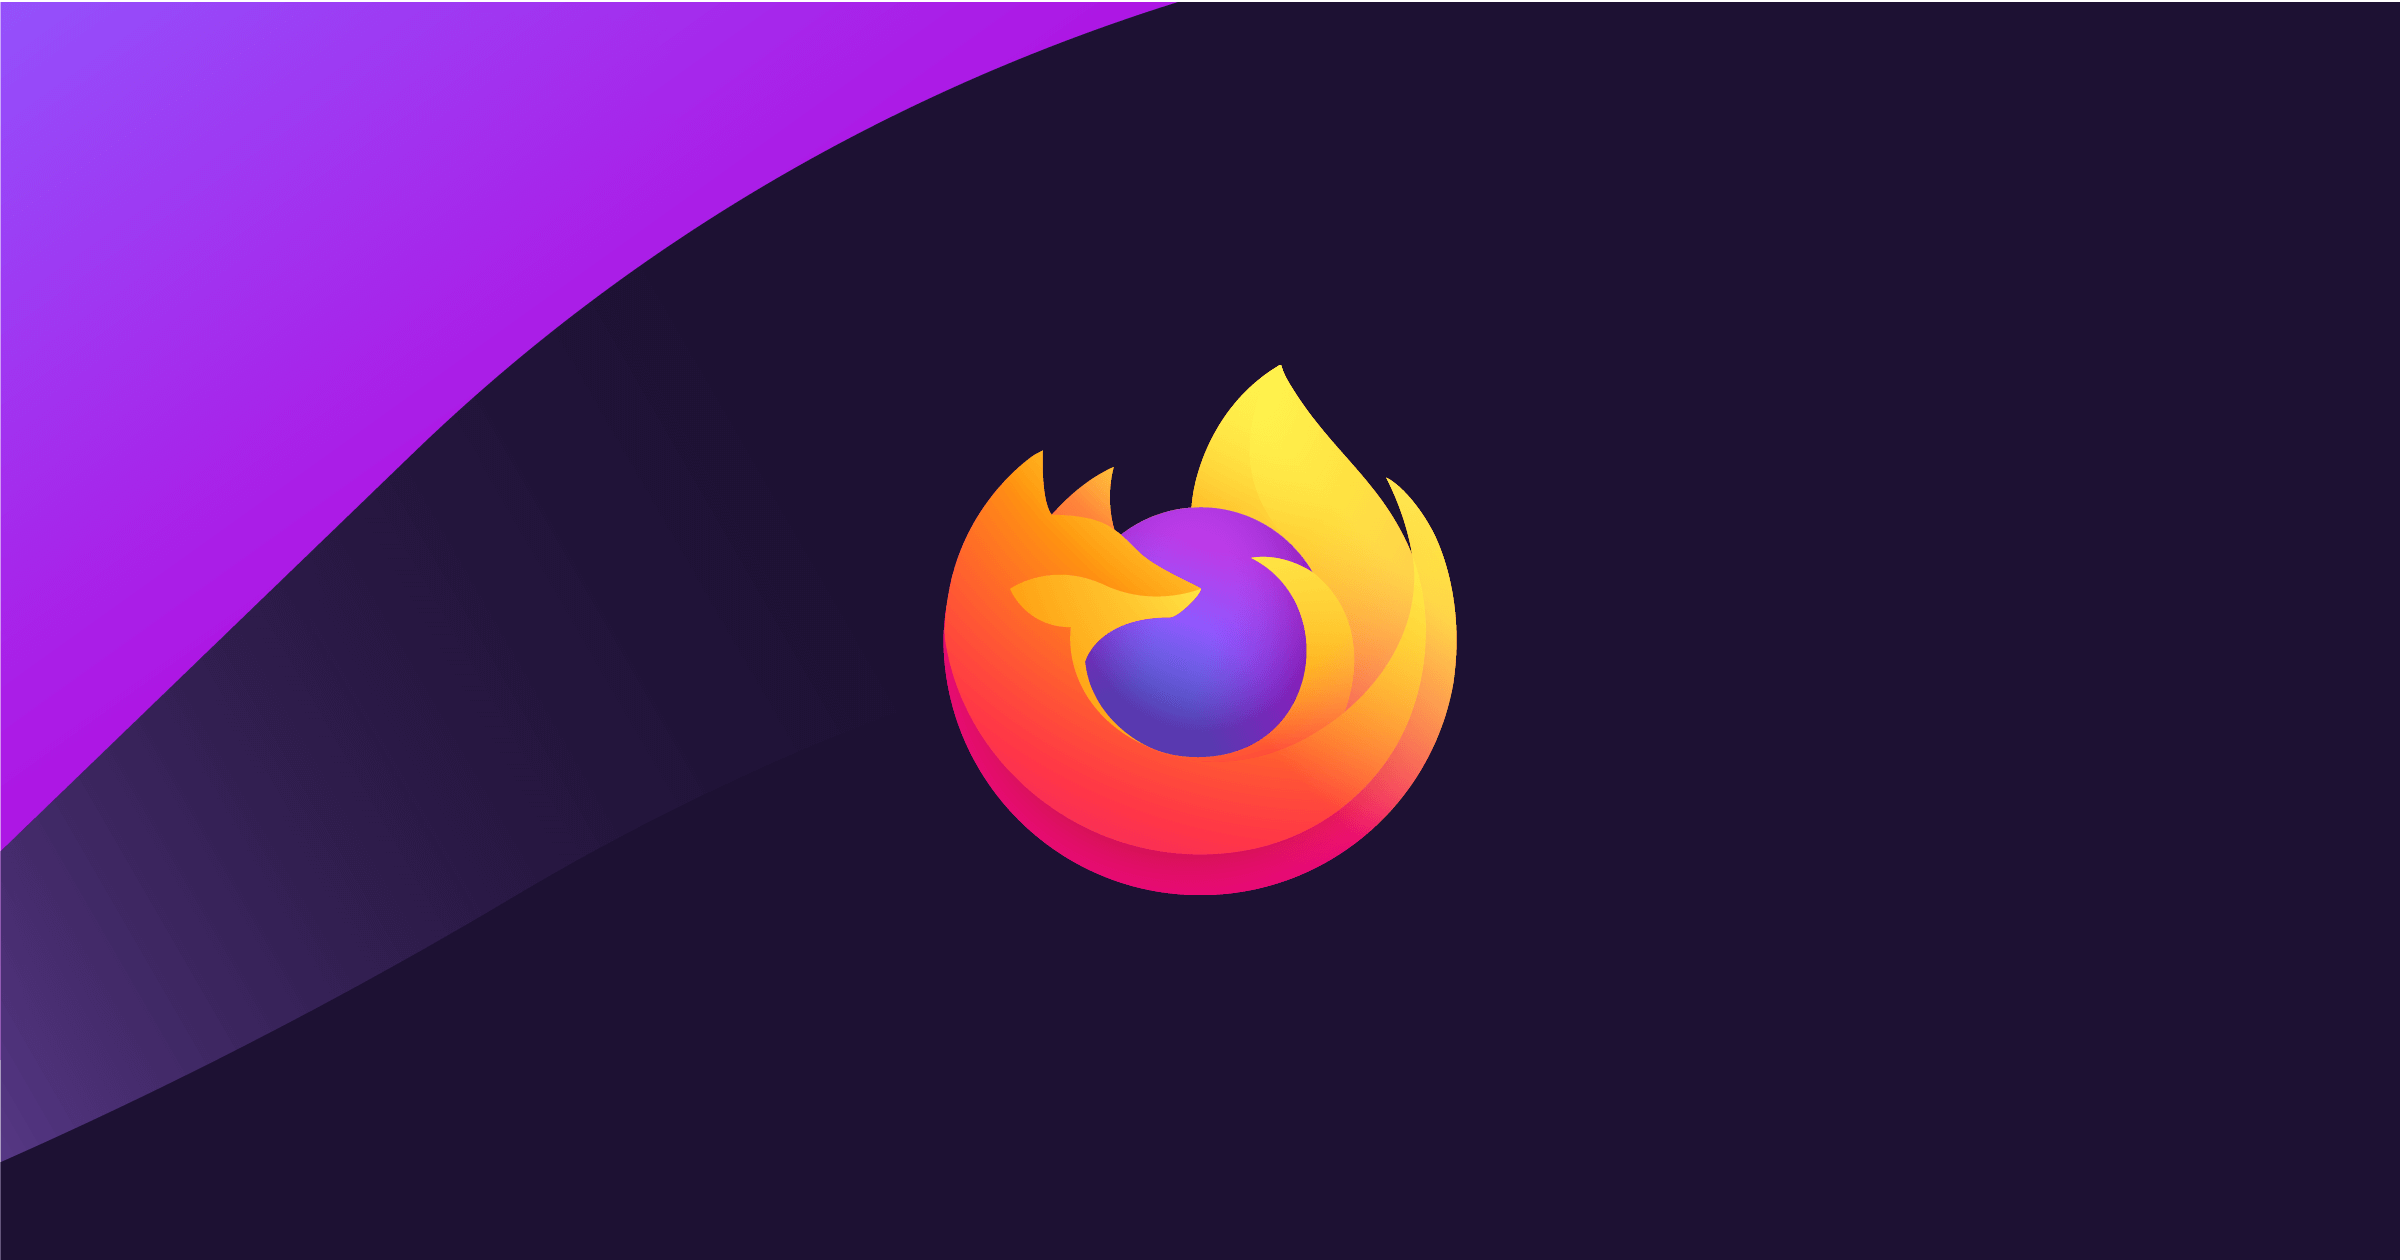 Change your browser to firefox for new security features